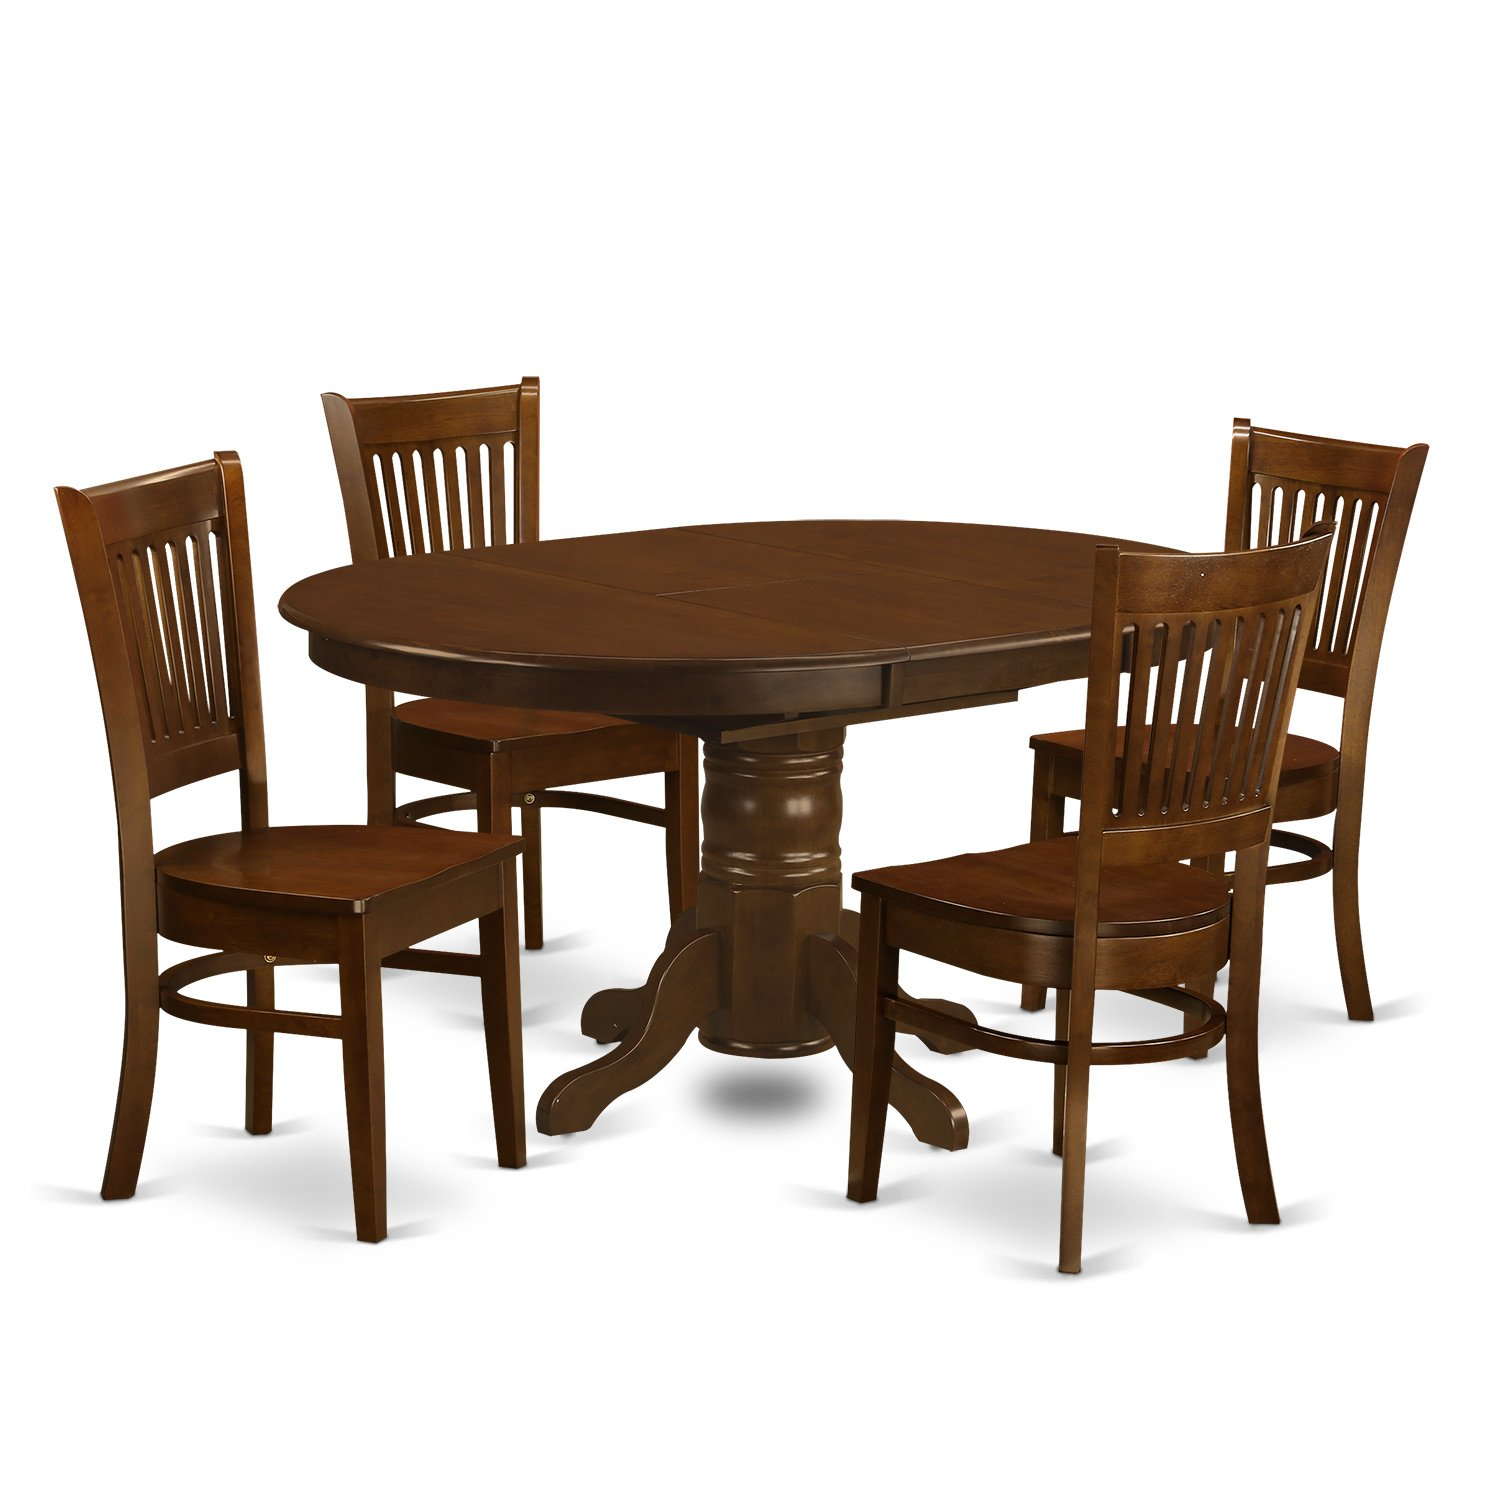 """East West Furniture KEVA5-ESP-W 5 Piece Set Kenley Dining Table with One 18"""" Leaf and 4 Wood Kitchen Chairs in Espresso"""